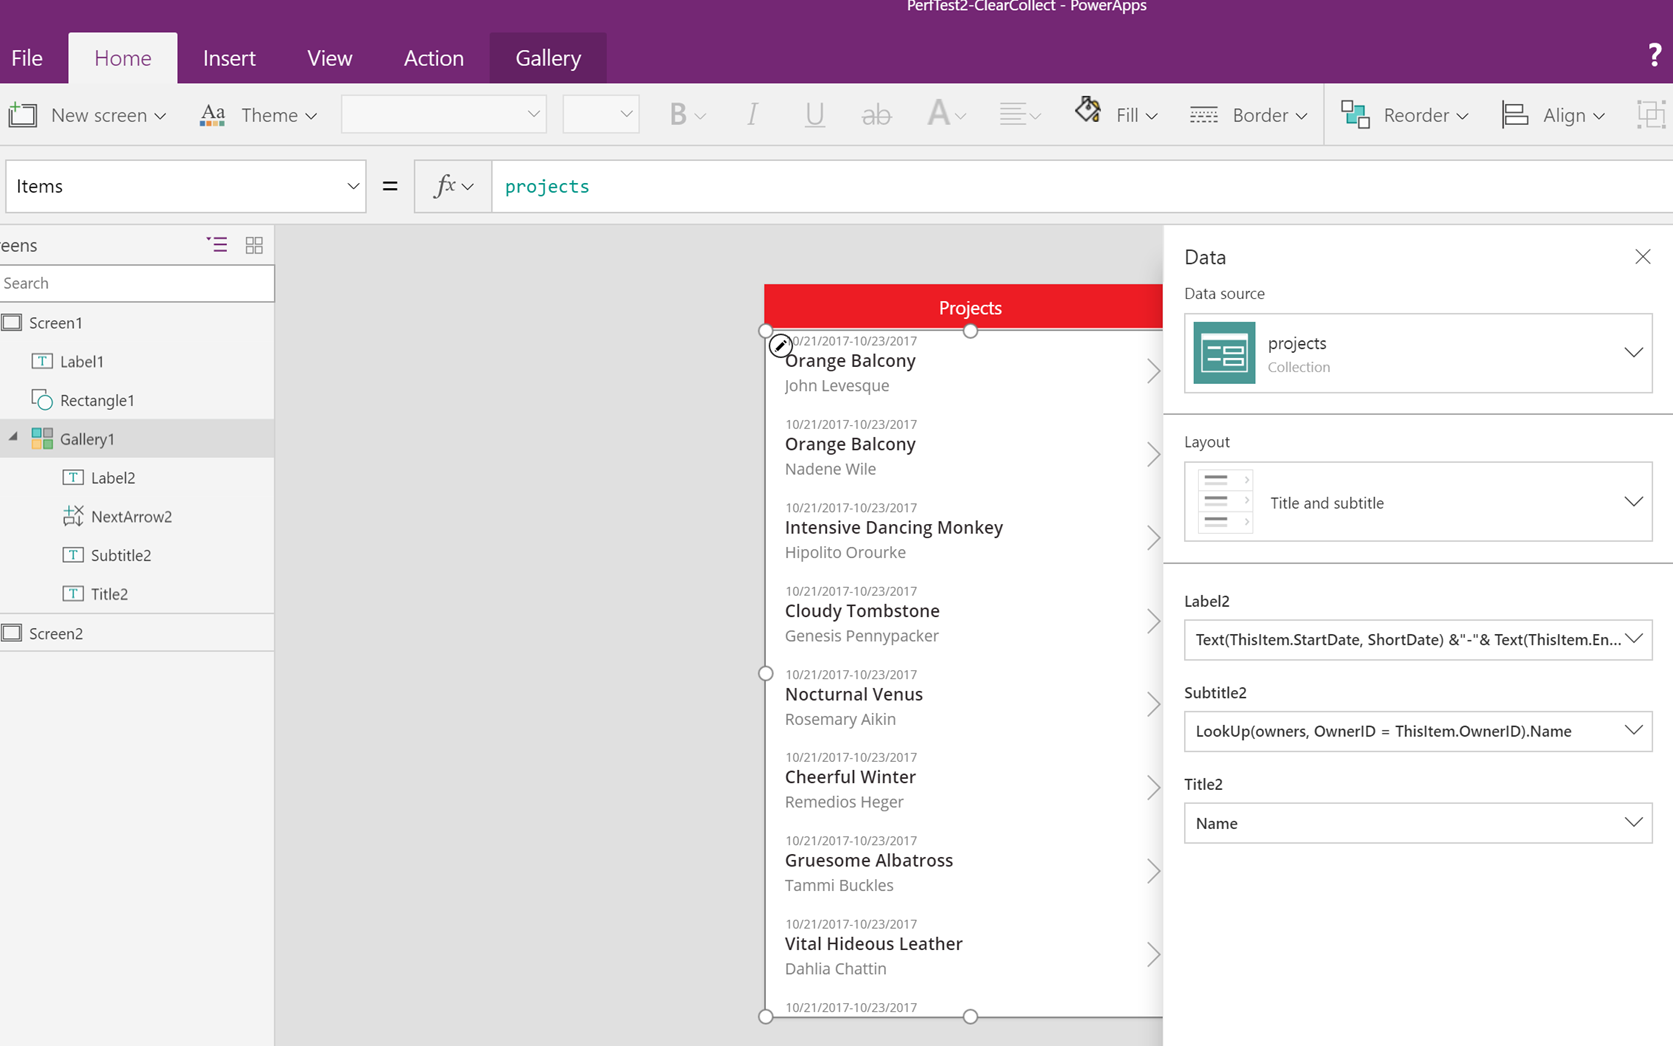 Performance considerations with PowerApps